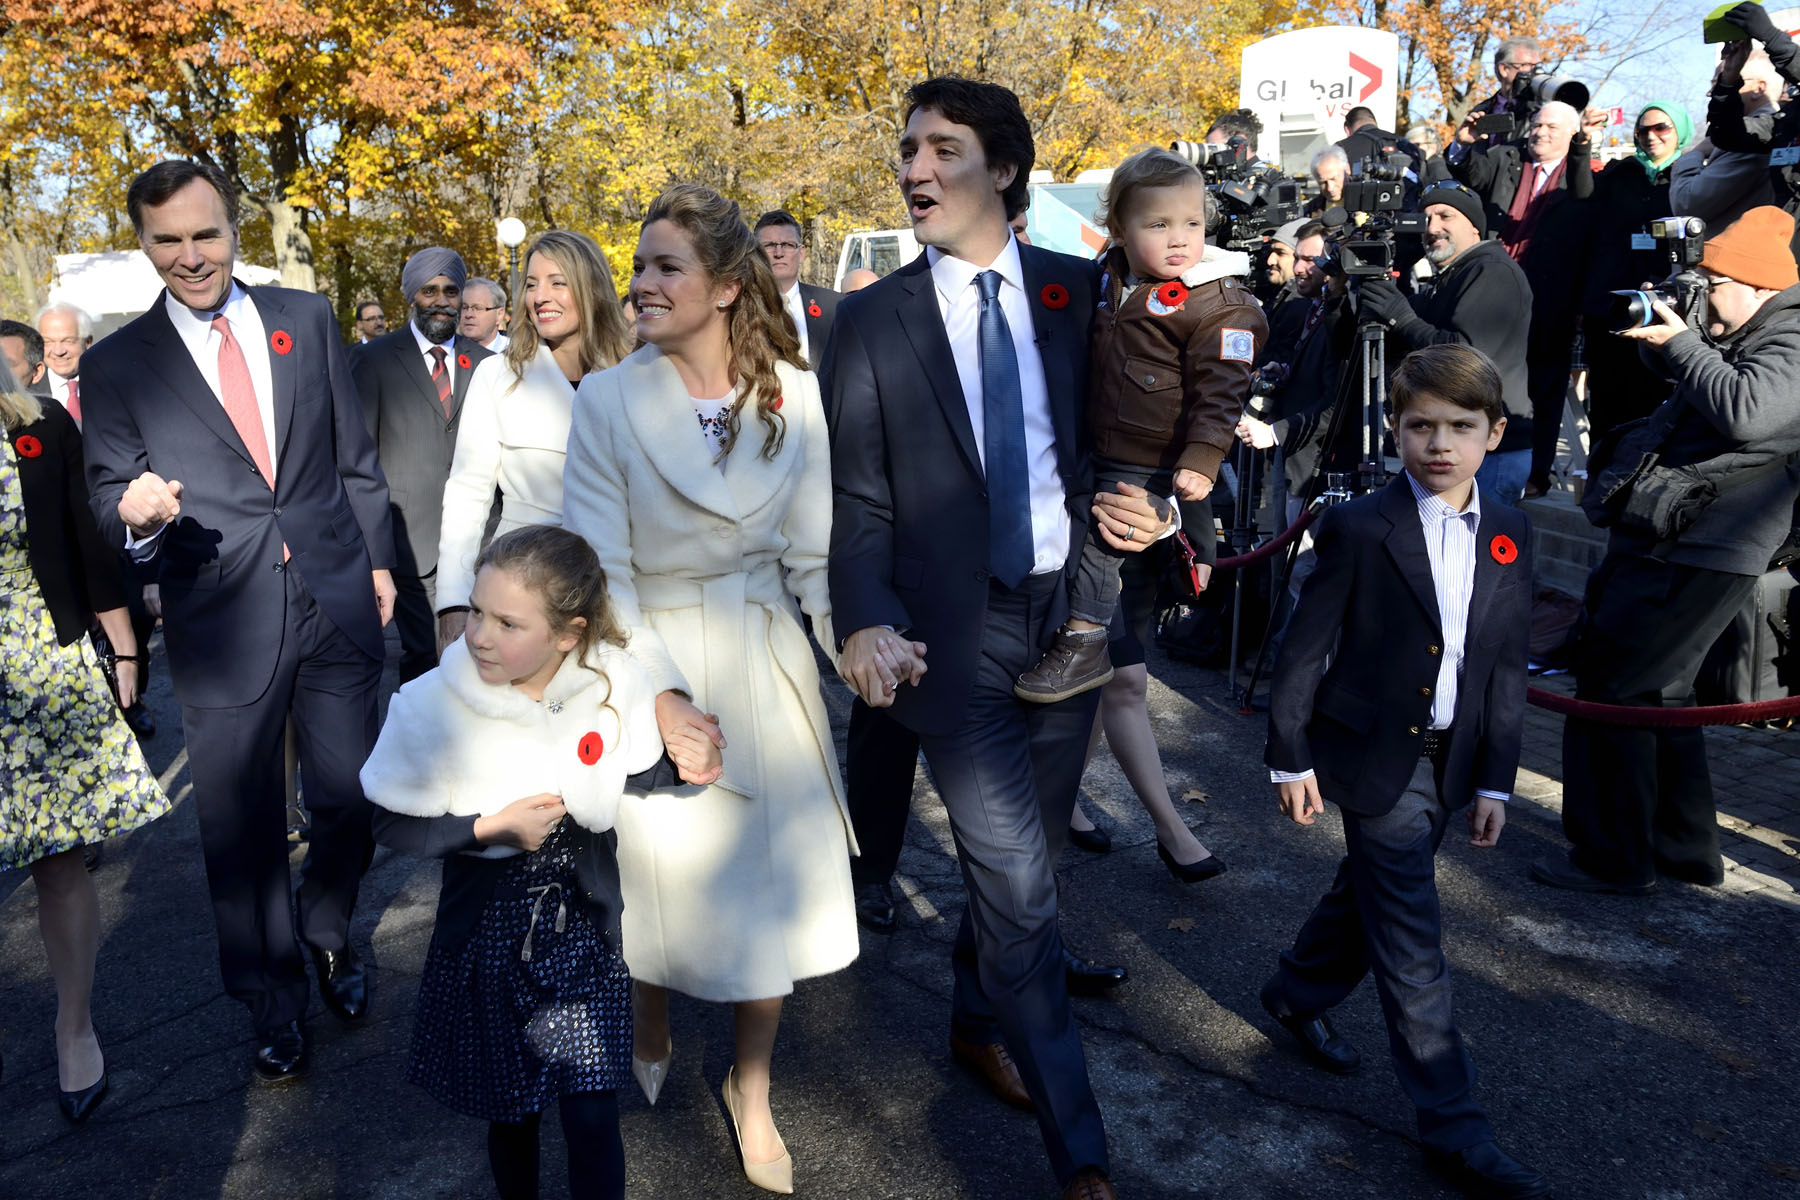 Mr. Trudeau and Mrs. Grégoire-Trudeau were joined by their three children.